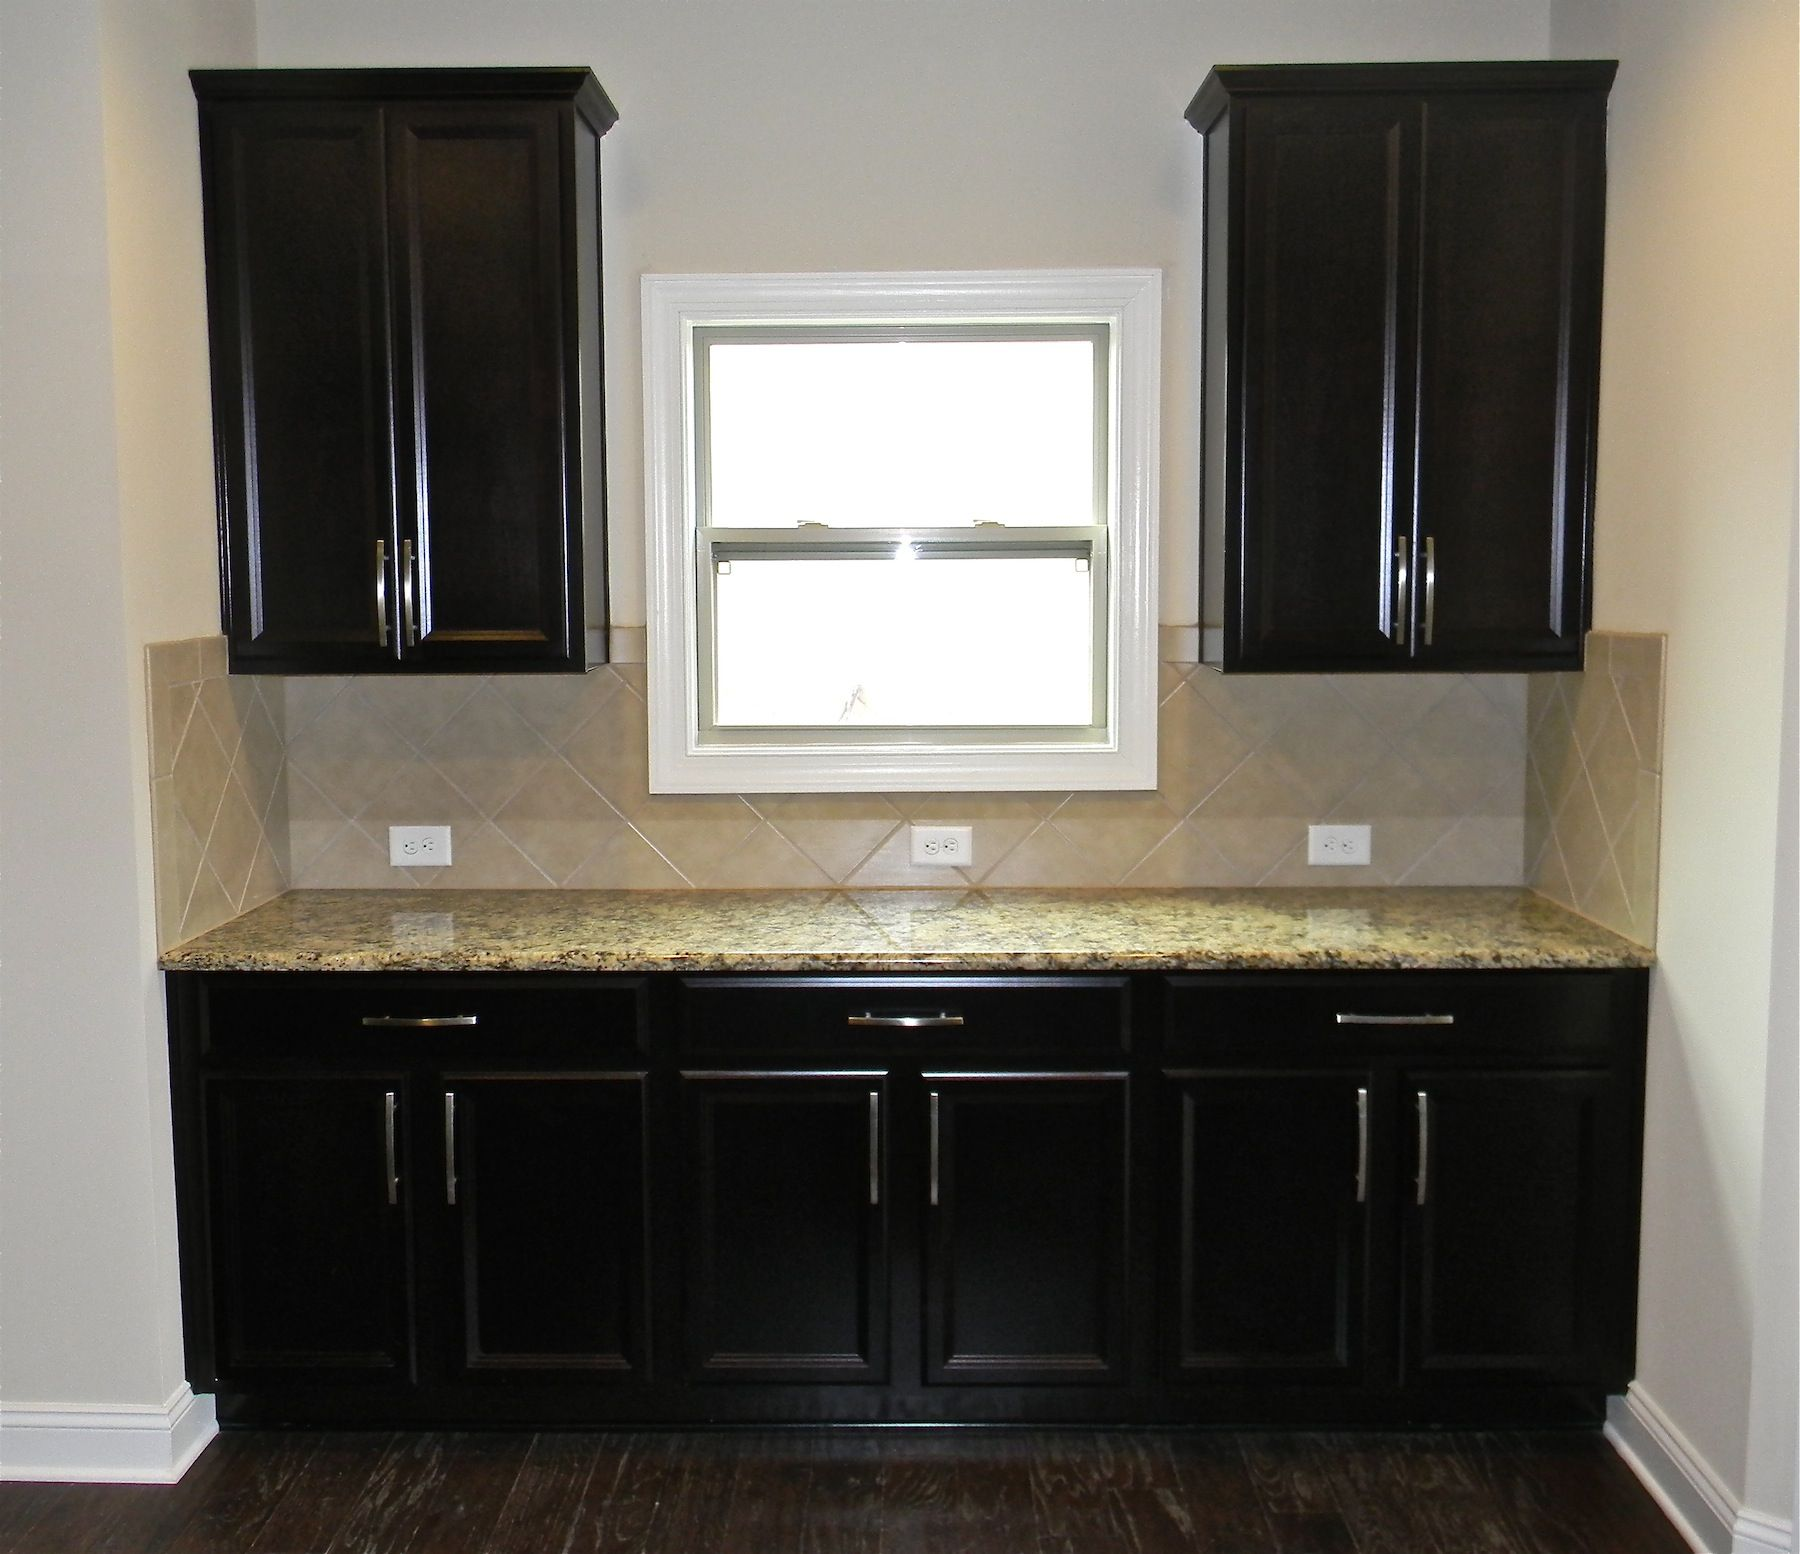 Espresso Colored Kitchen Cabinets: Additional Cabinets In Window Seat Area. Timberlake Tahoe